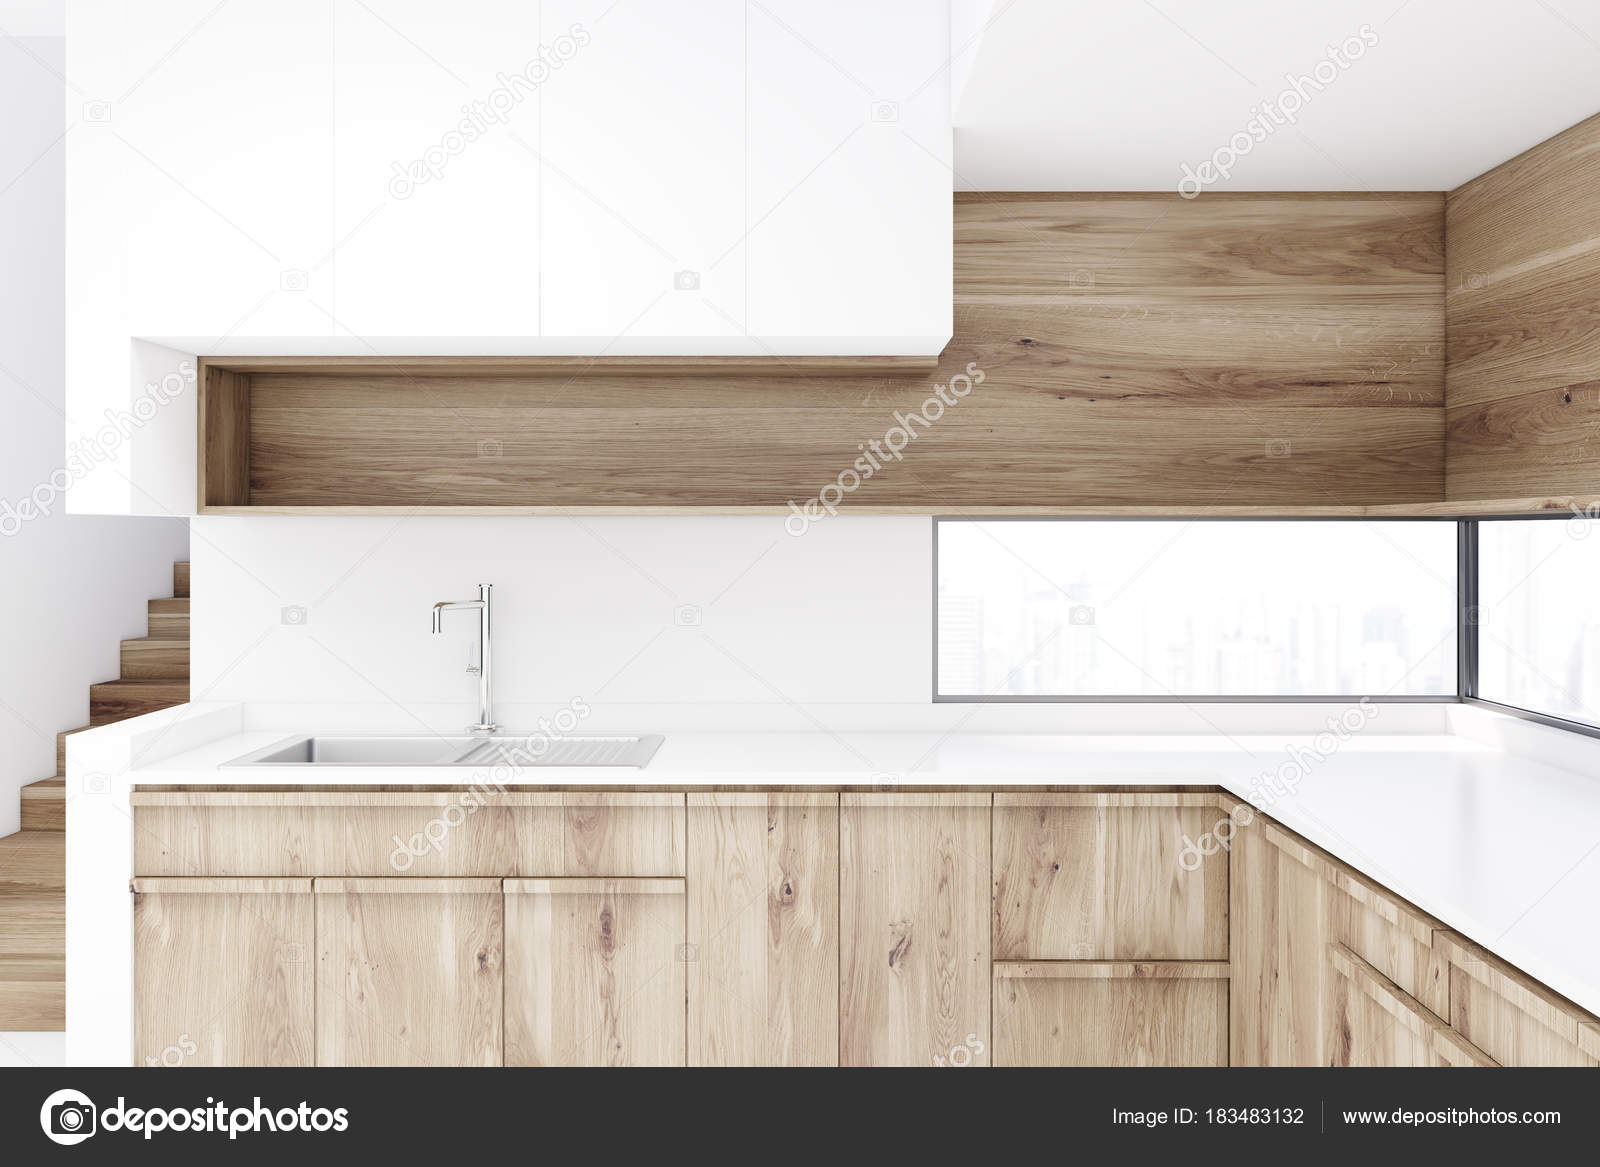 wooden countertops in kitchen White Kitchen With Wooden Countertops Stock Photo